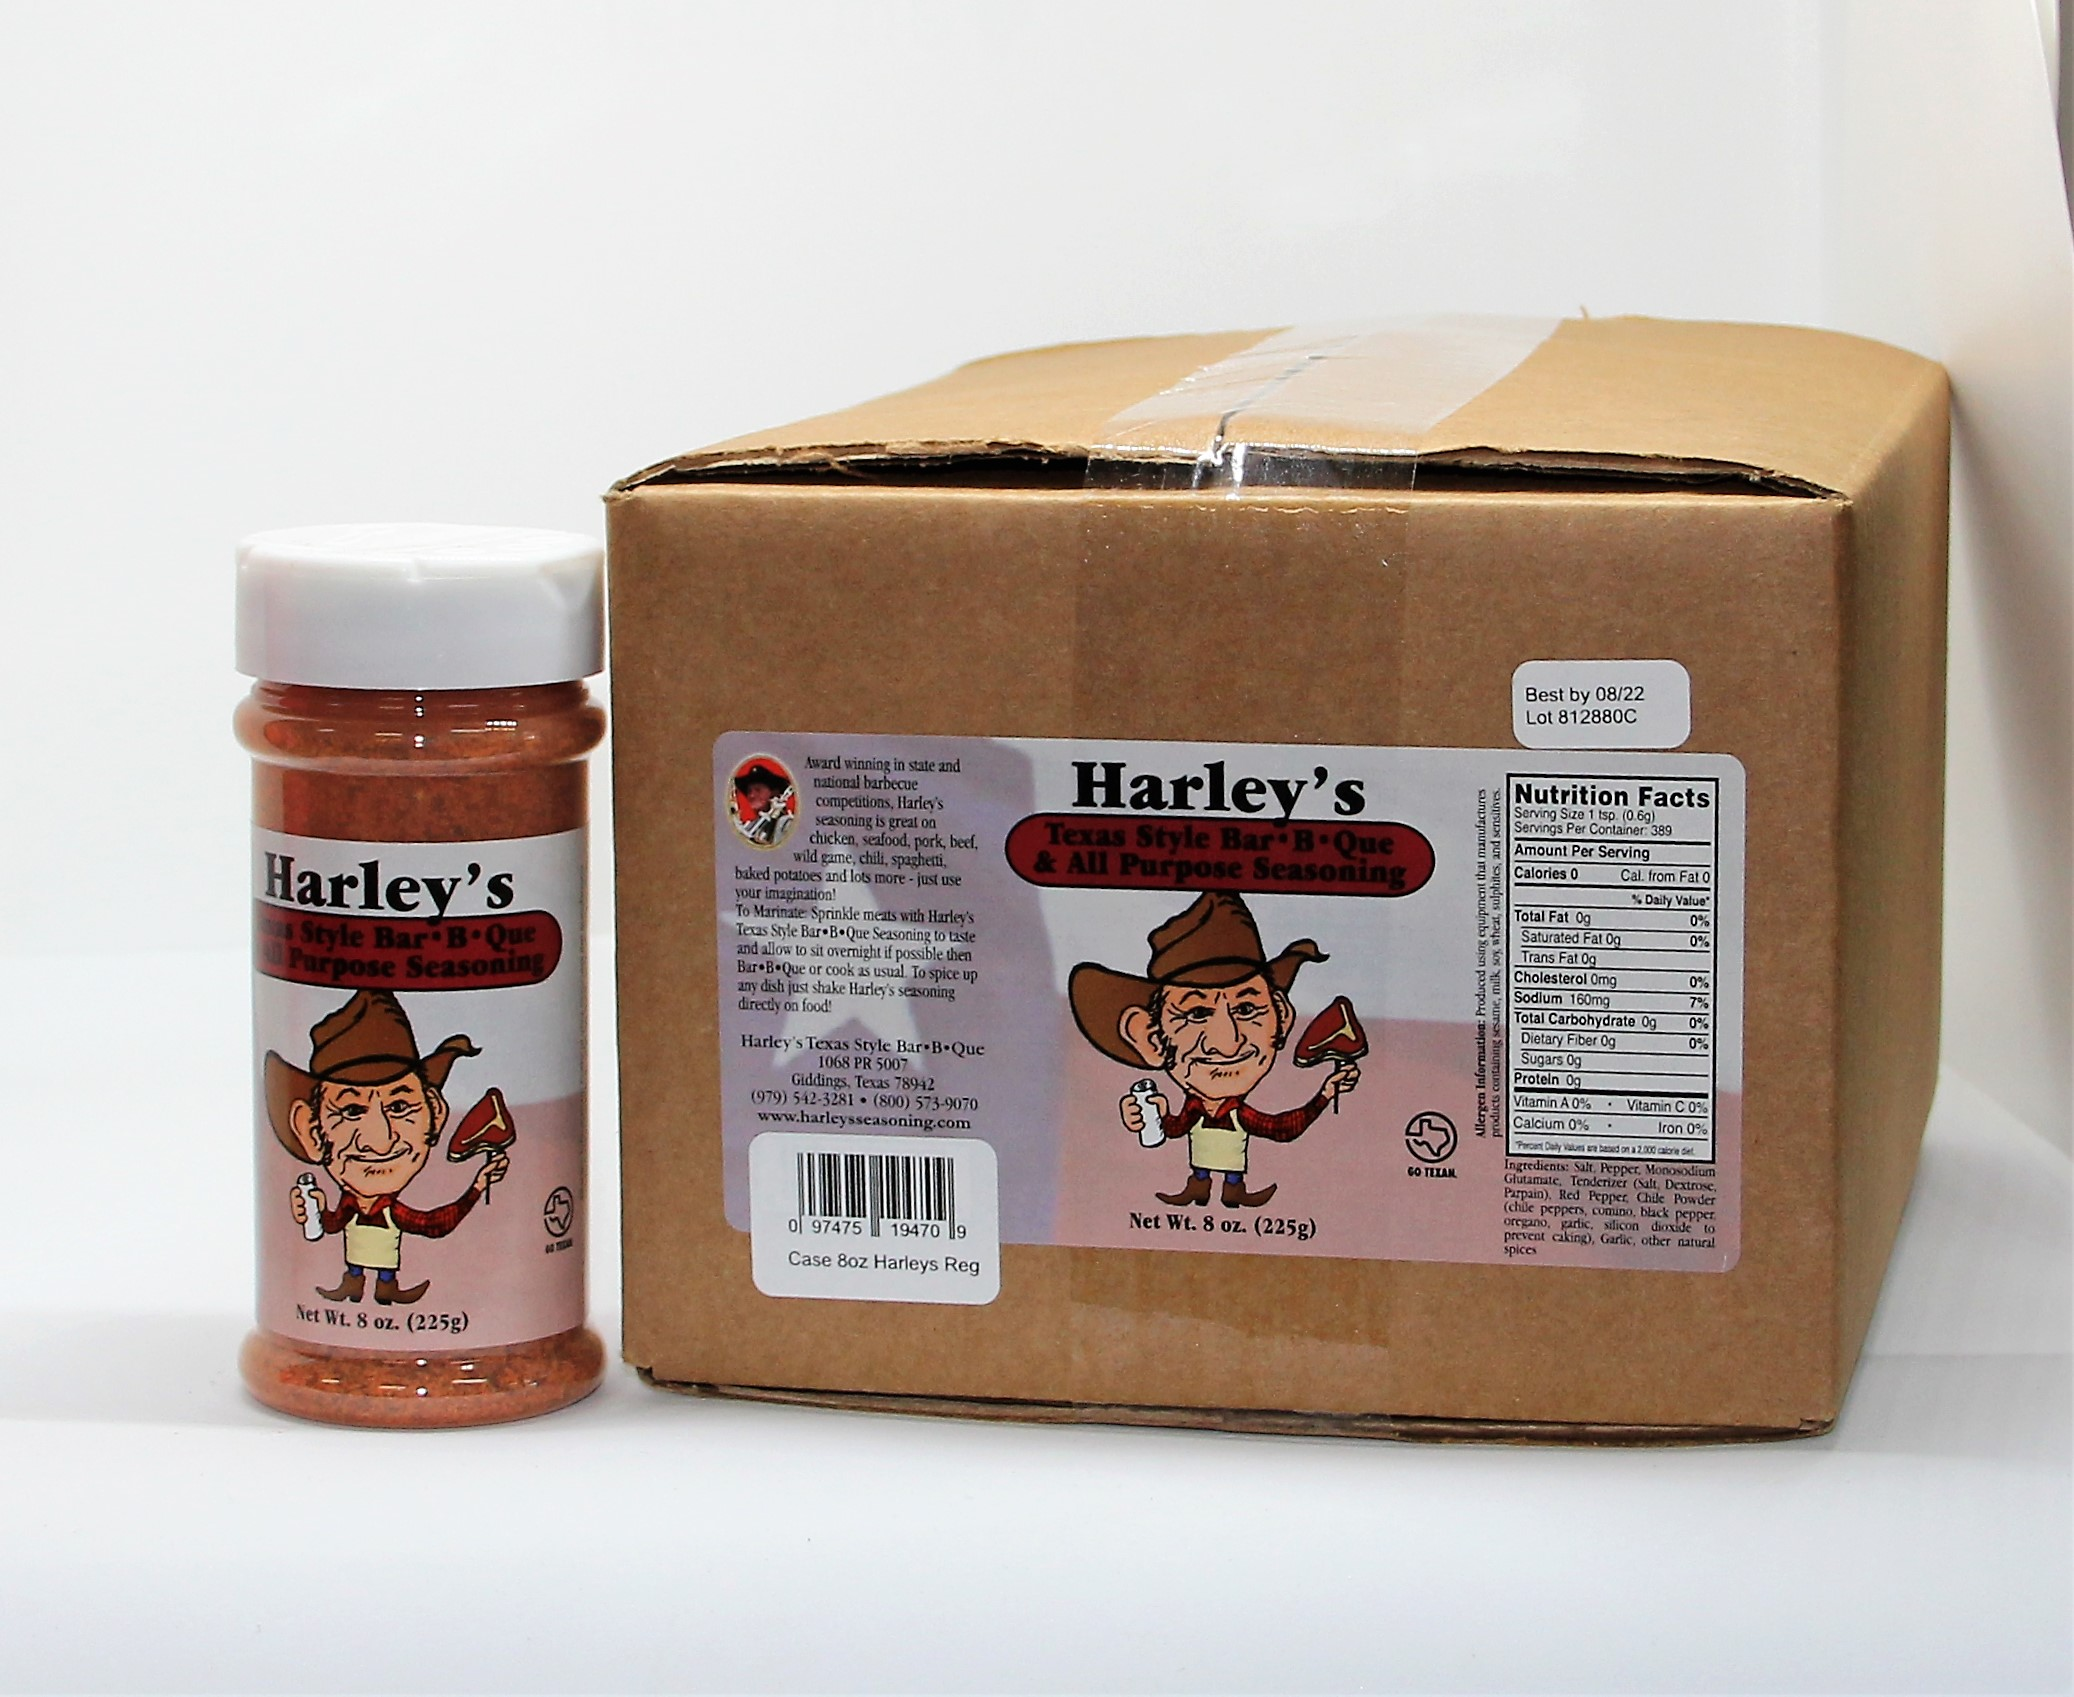 Harley's Original Seasoning (Size: Case of 8 oz bottles (12 bottles))